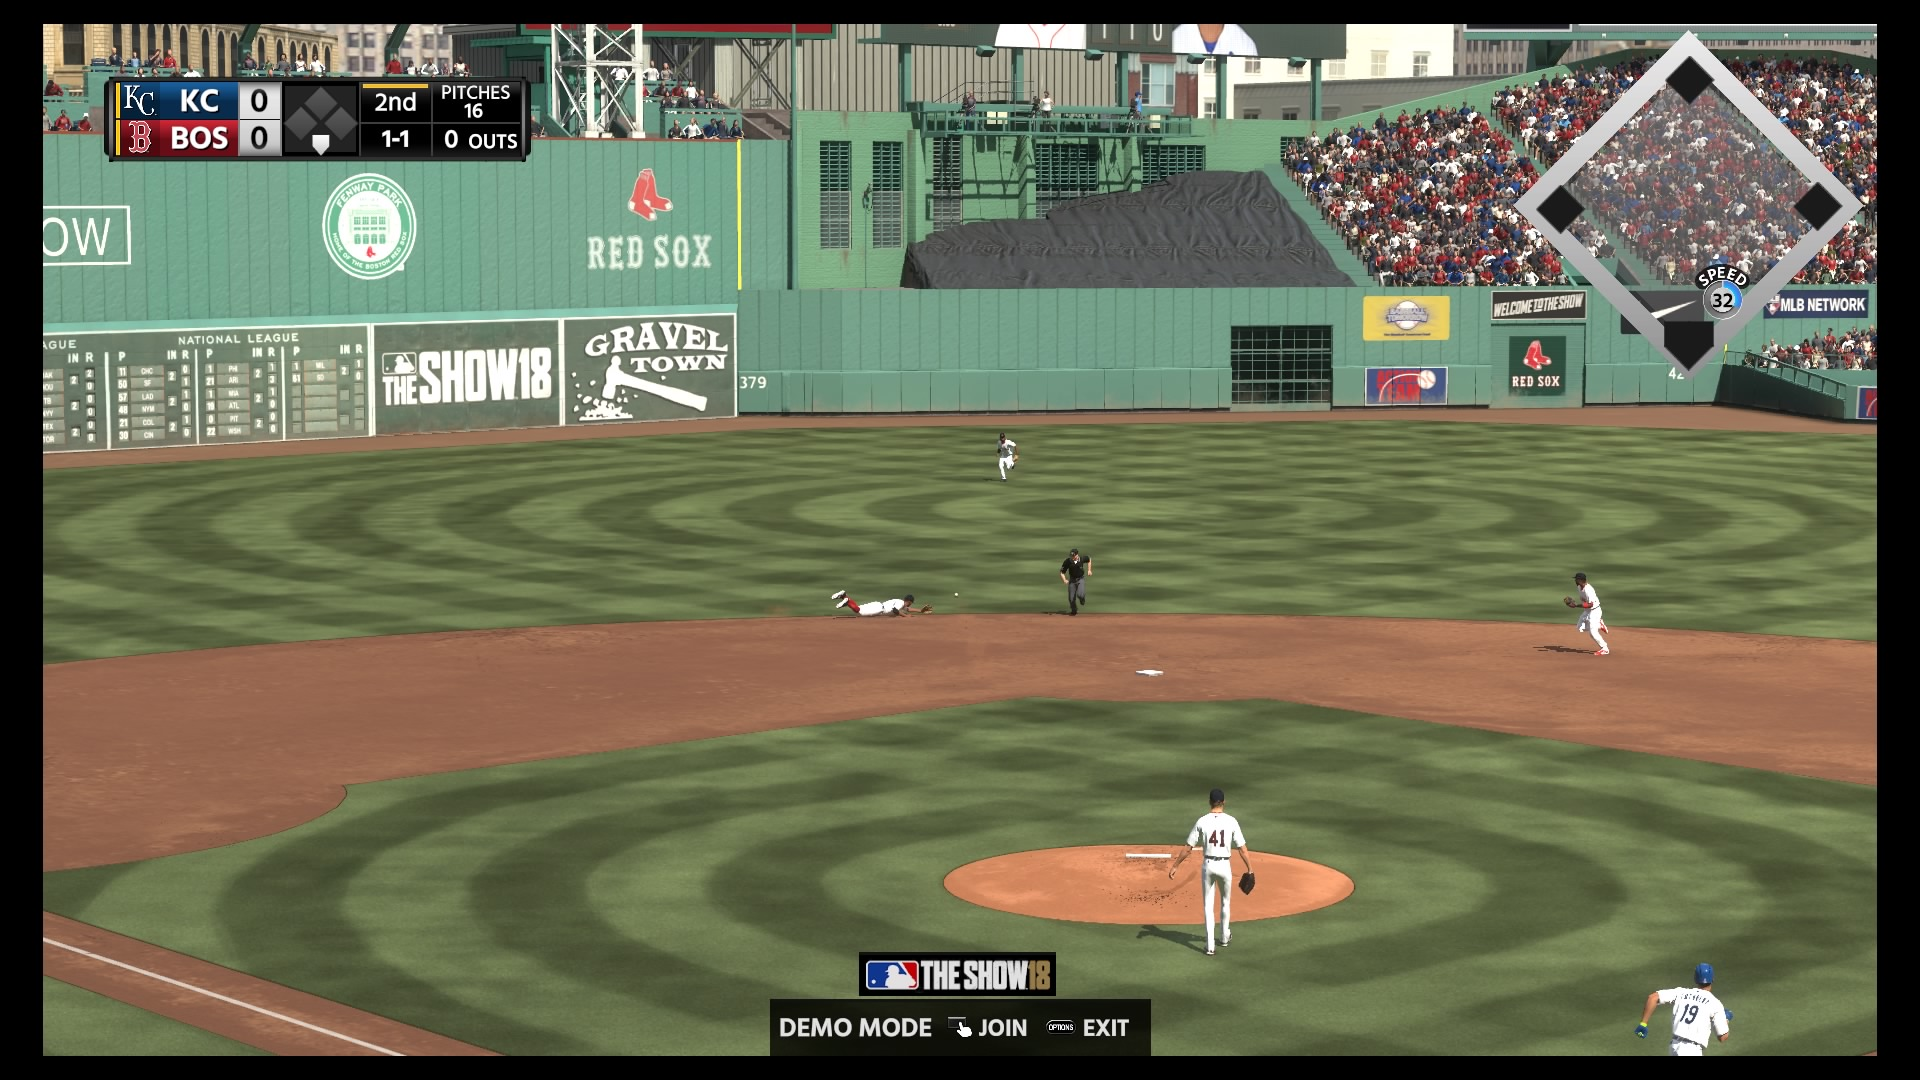 MLB The Show 18 Field